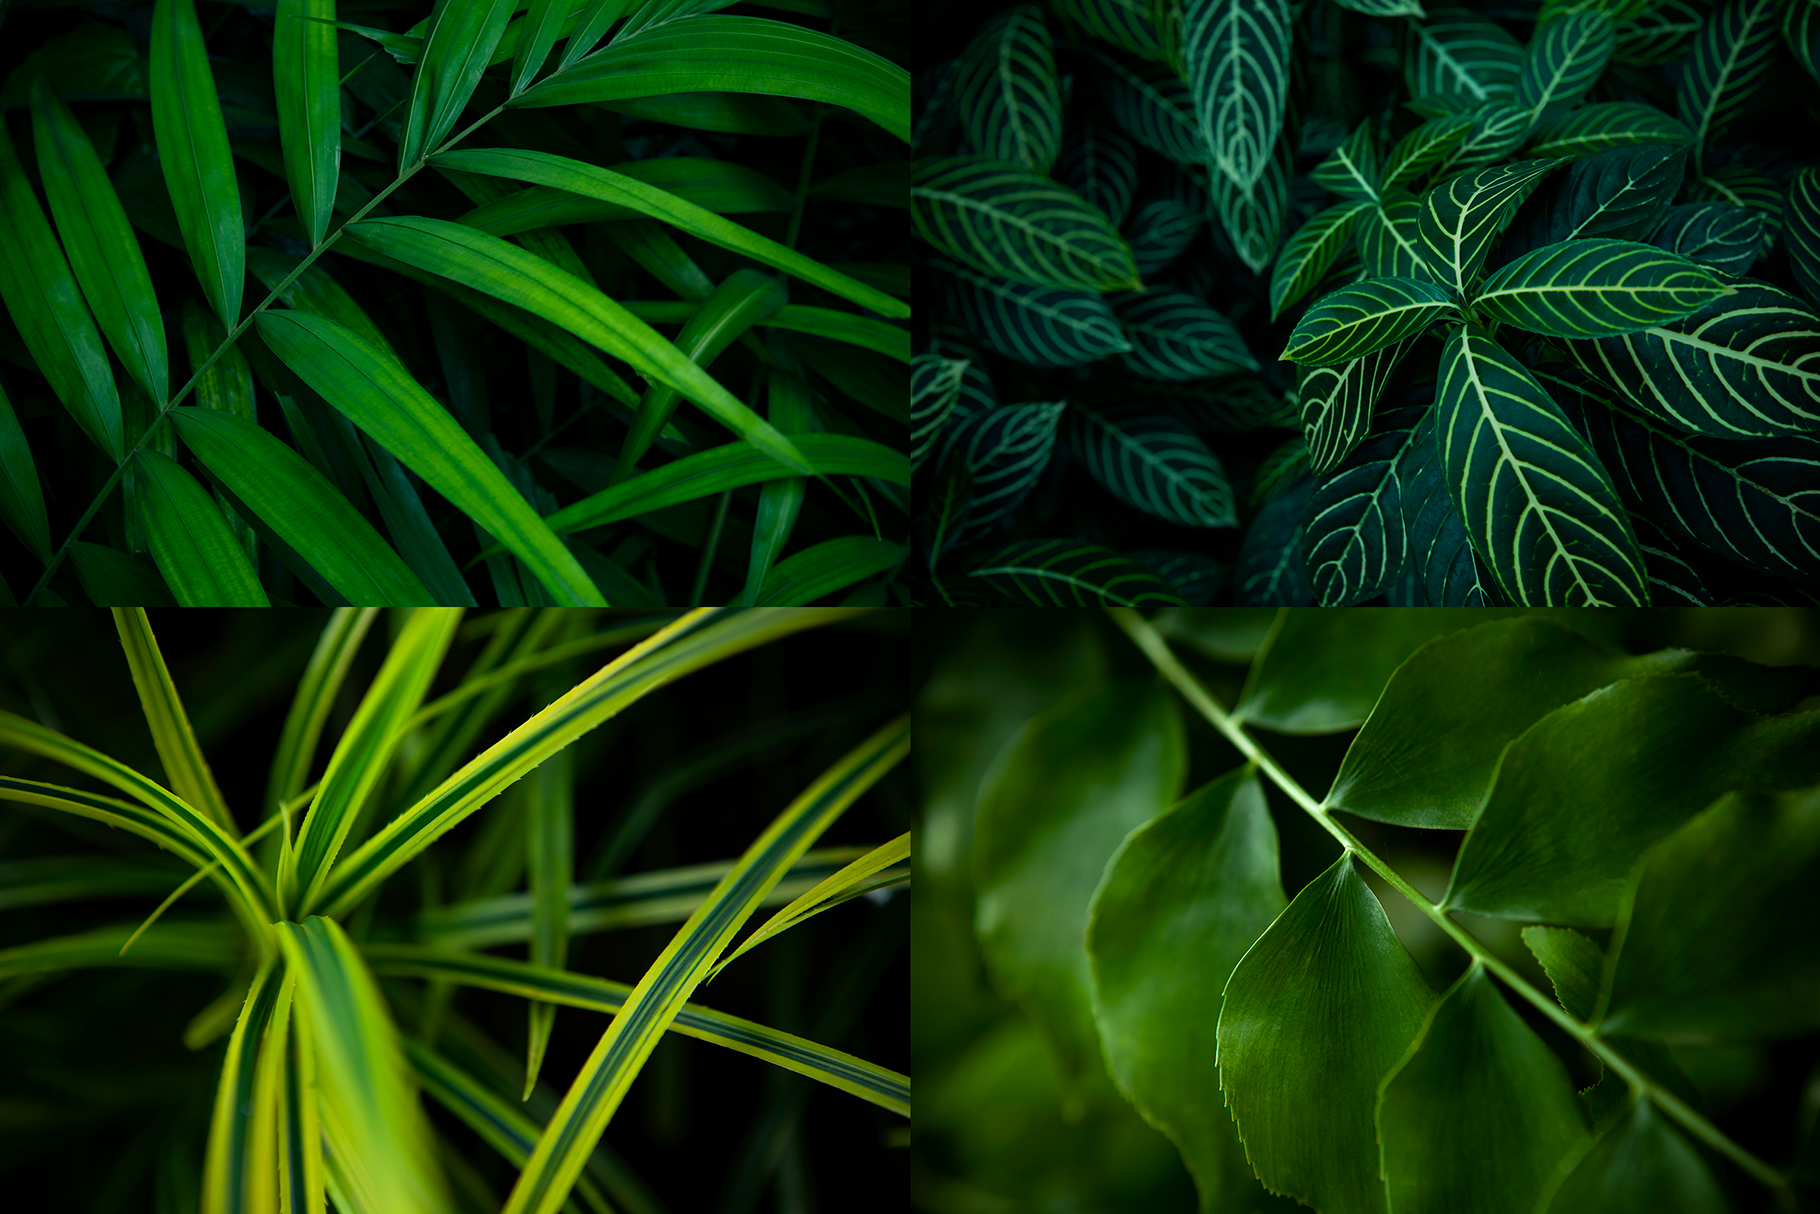 12 Tropical Green Leaves Backgrounds example image 2